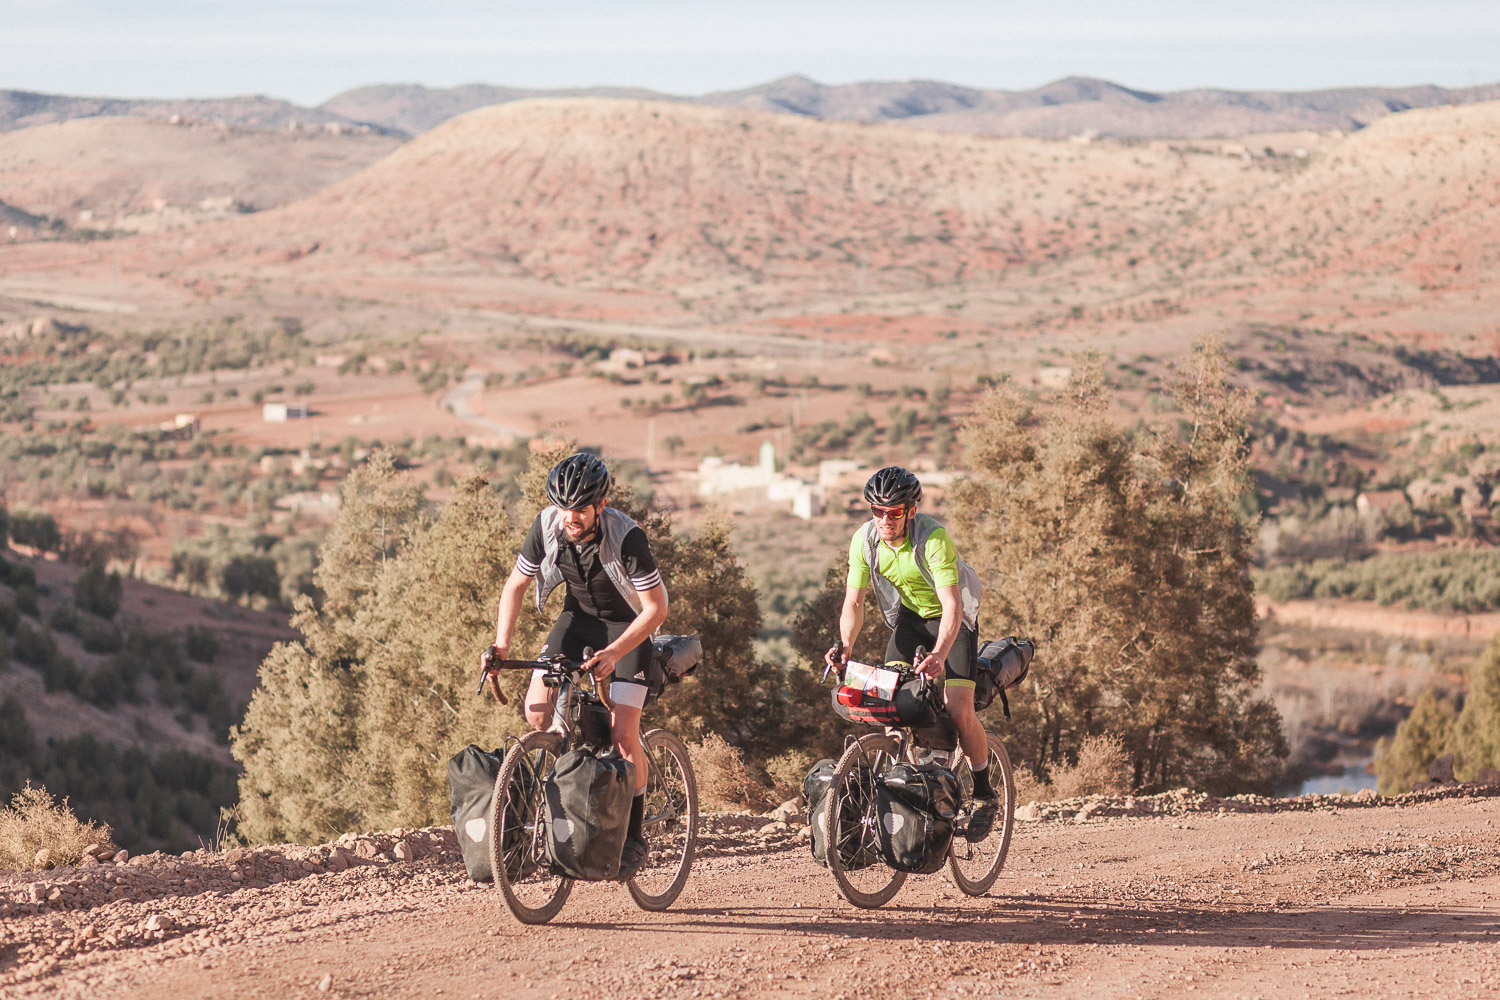 8bar bikes adventures morocco gravel 20151215 0094 bearbeitet - 8bar Adventures - Morocco - High Atlas - Part 2/2